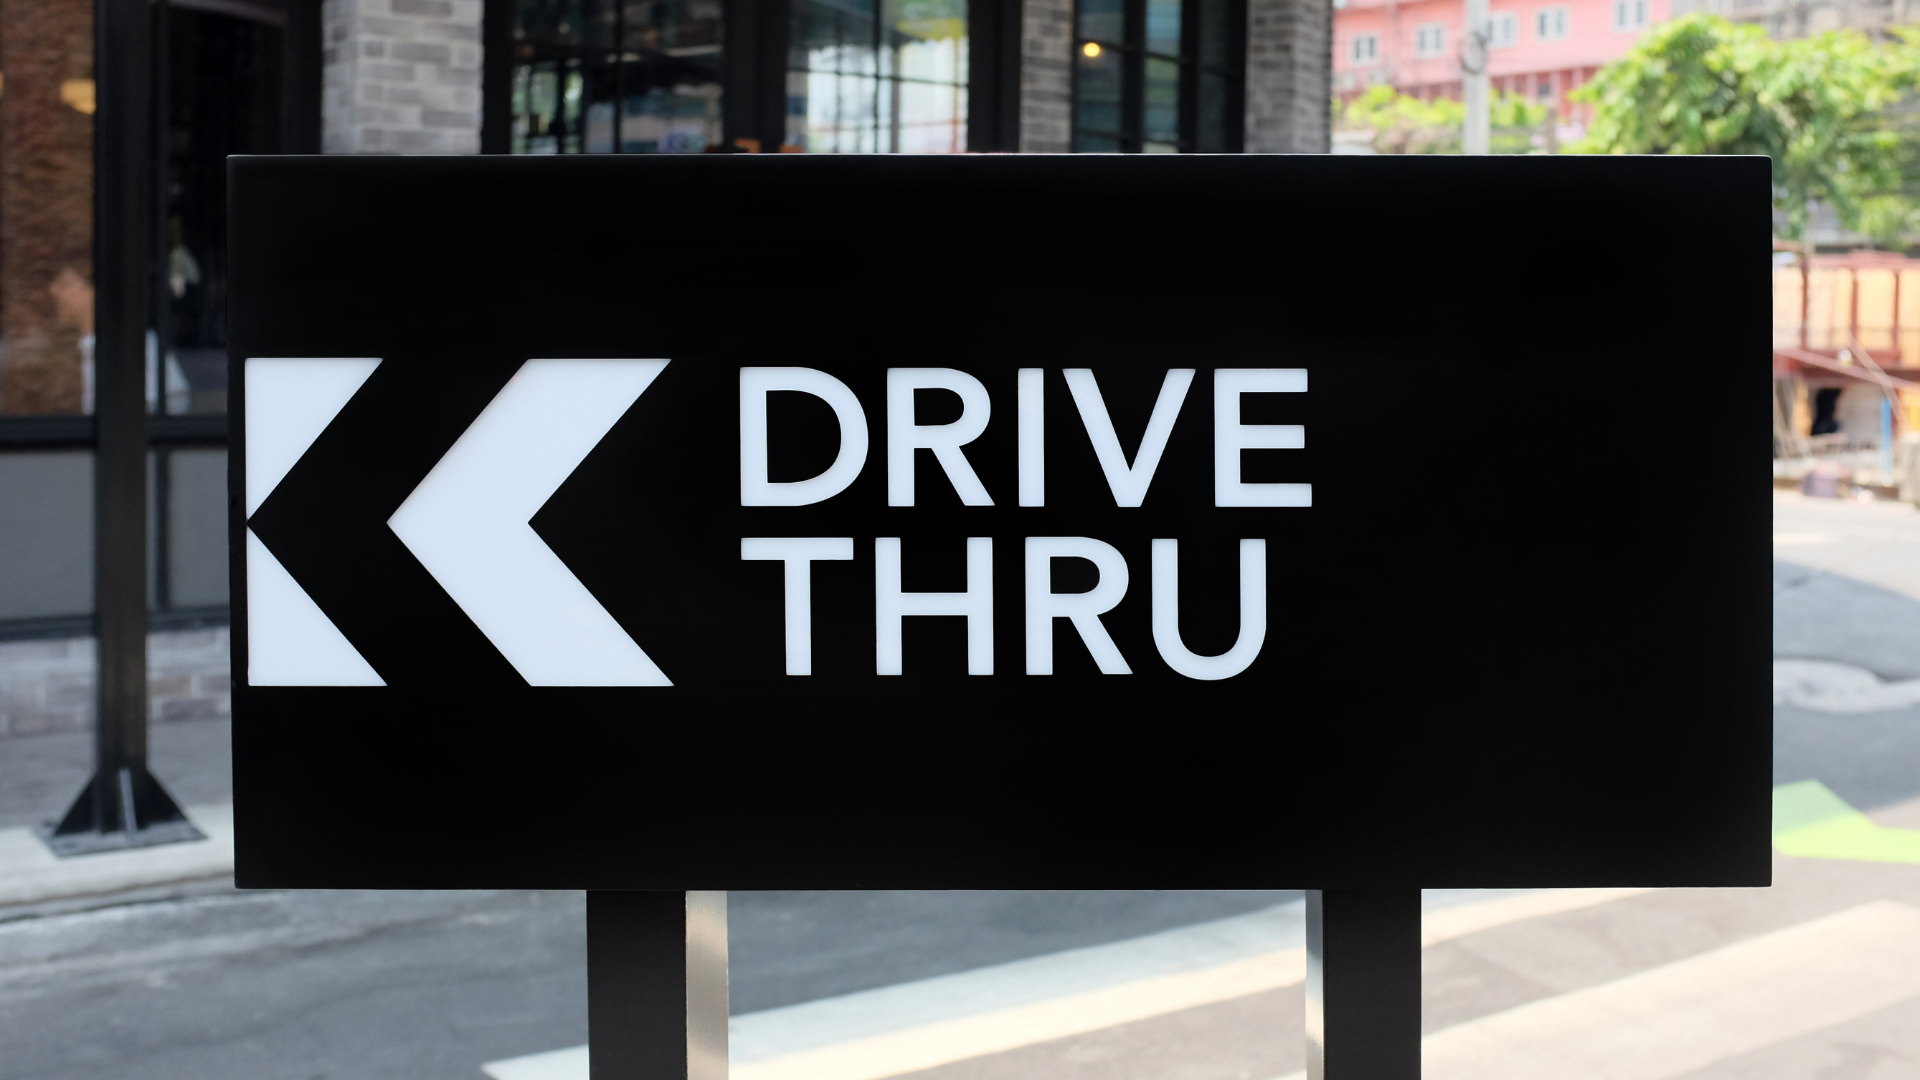 5 Steps to Staying out of the Drive Thru